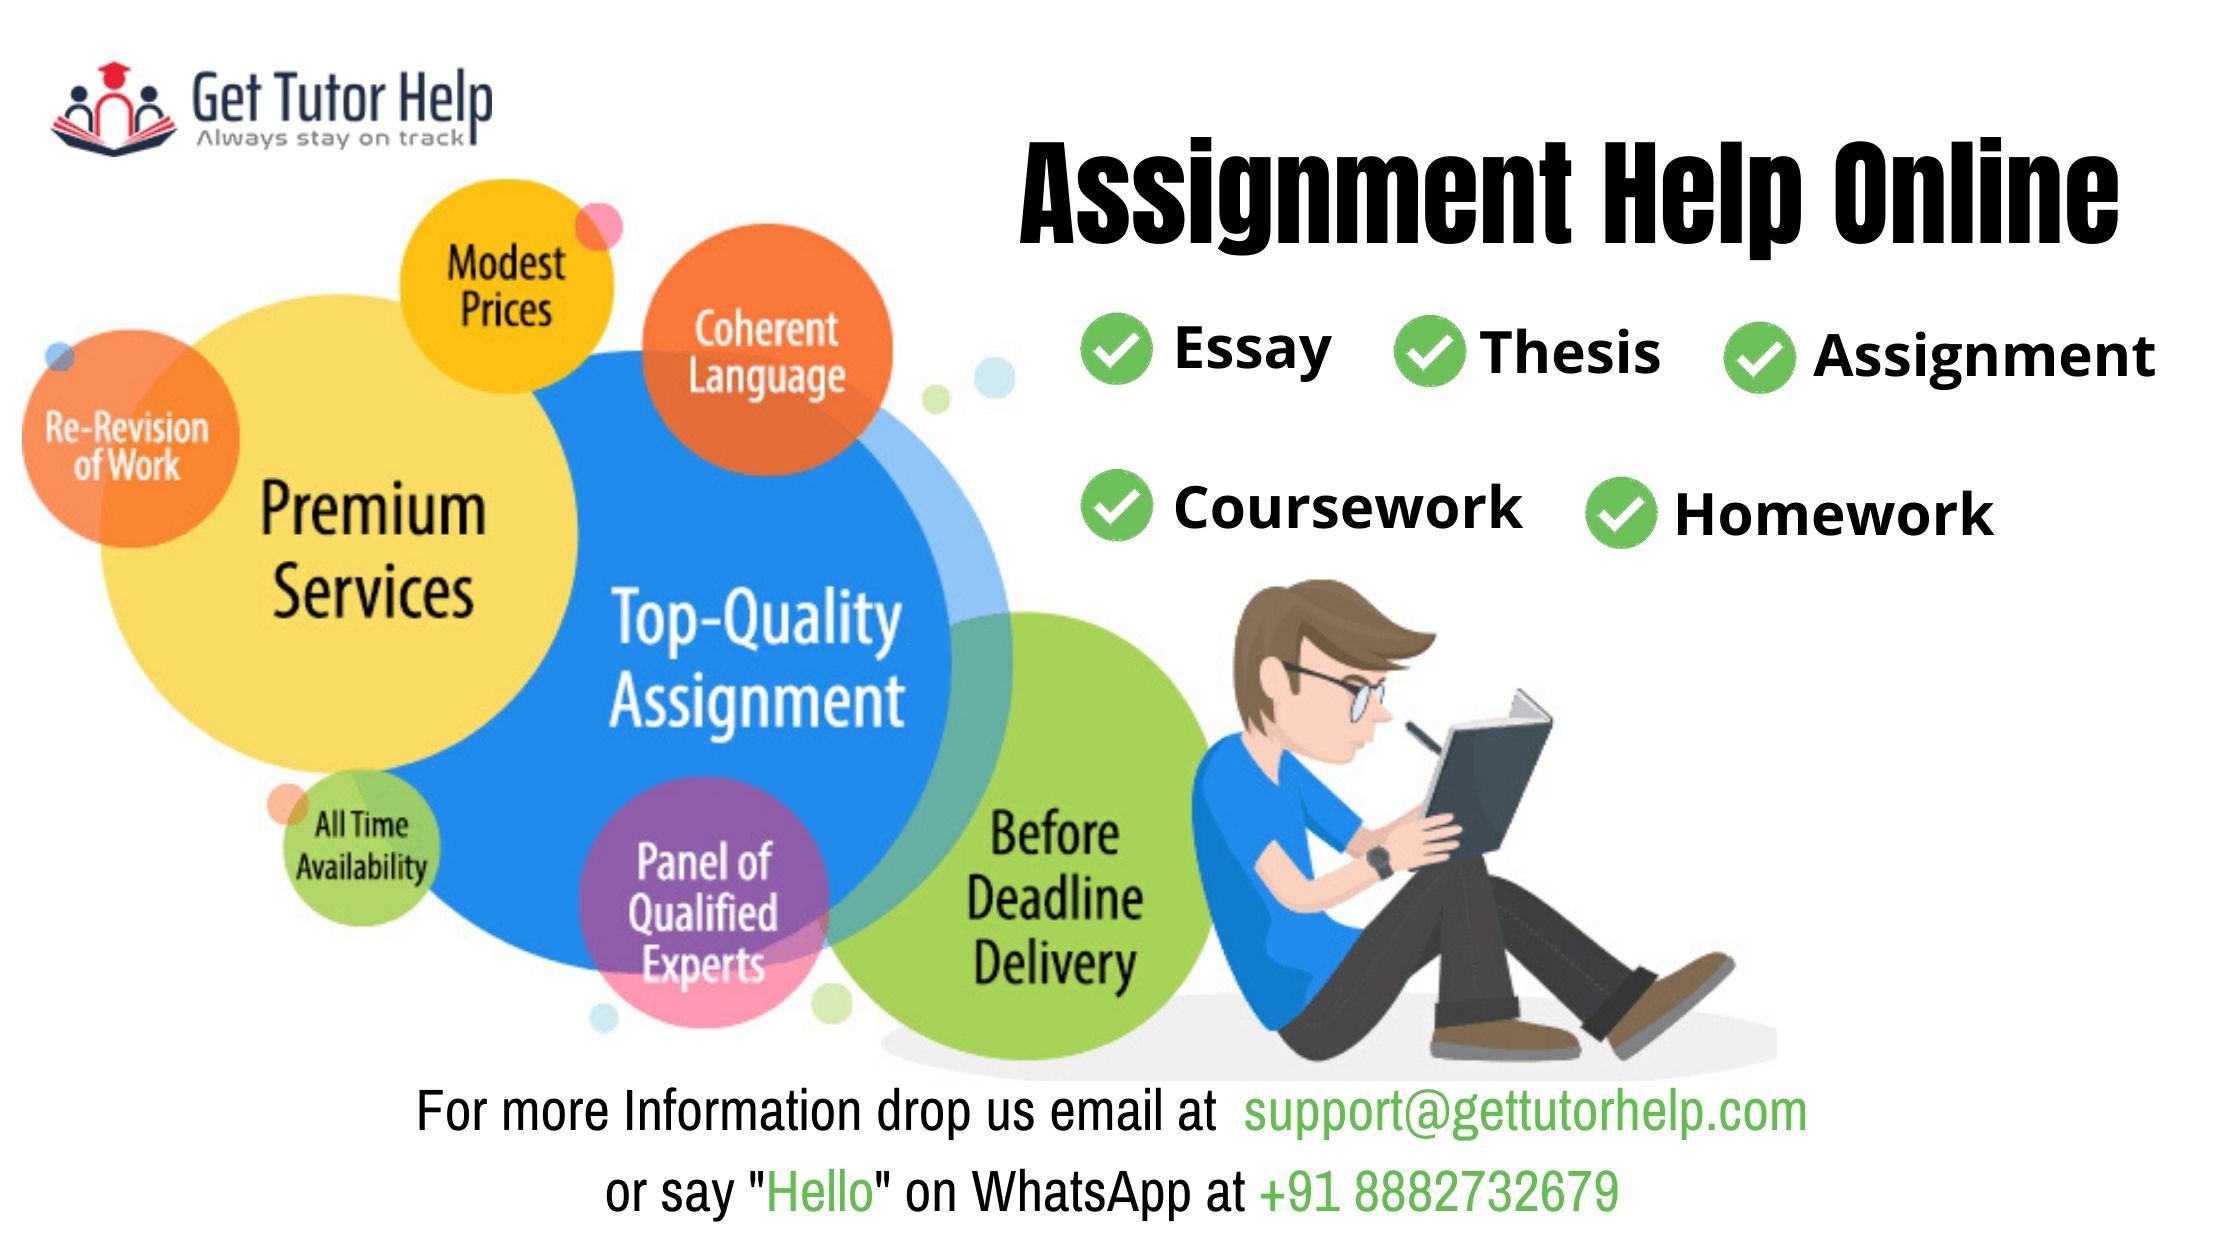 Get Tutor Help : Assignment Help Online: +91 88827 32679,